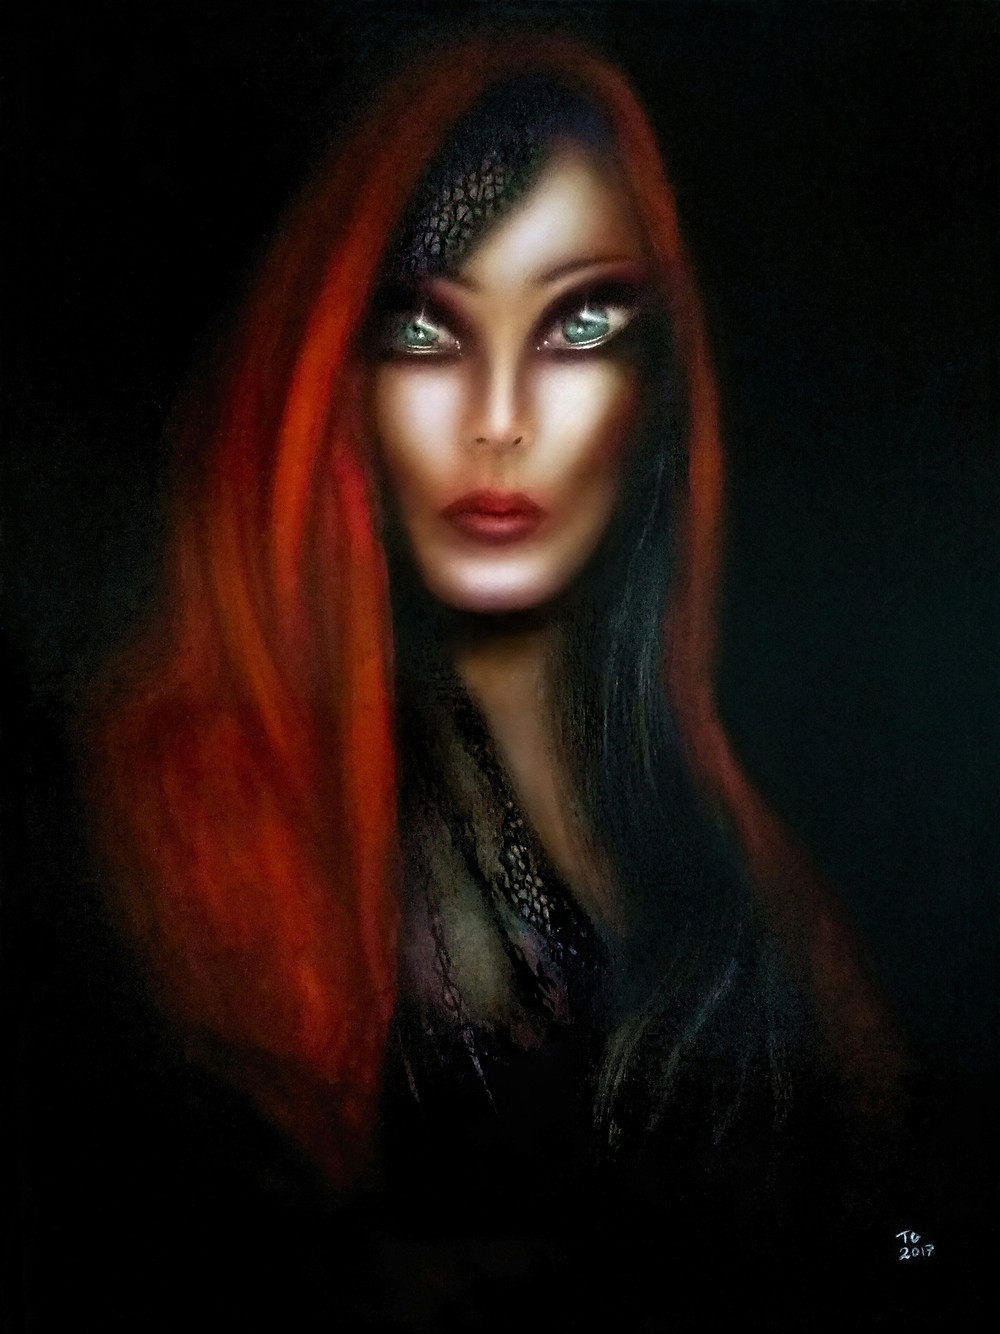 painting of mary magdalene with blue eyes and dressed in s red robe by tiago azevedo a lowbrow pop surrealism artist